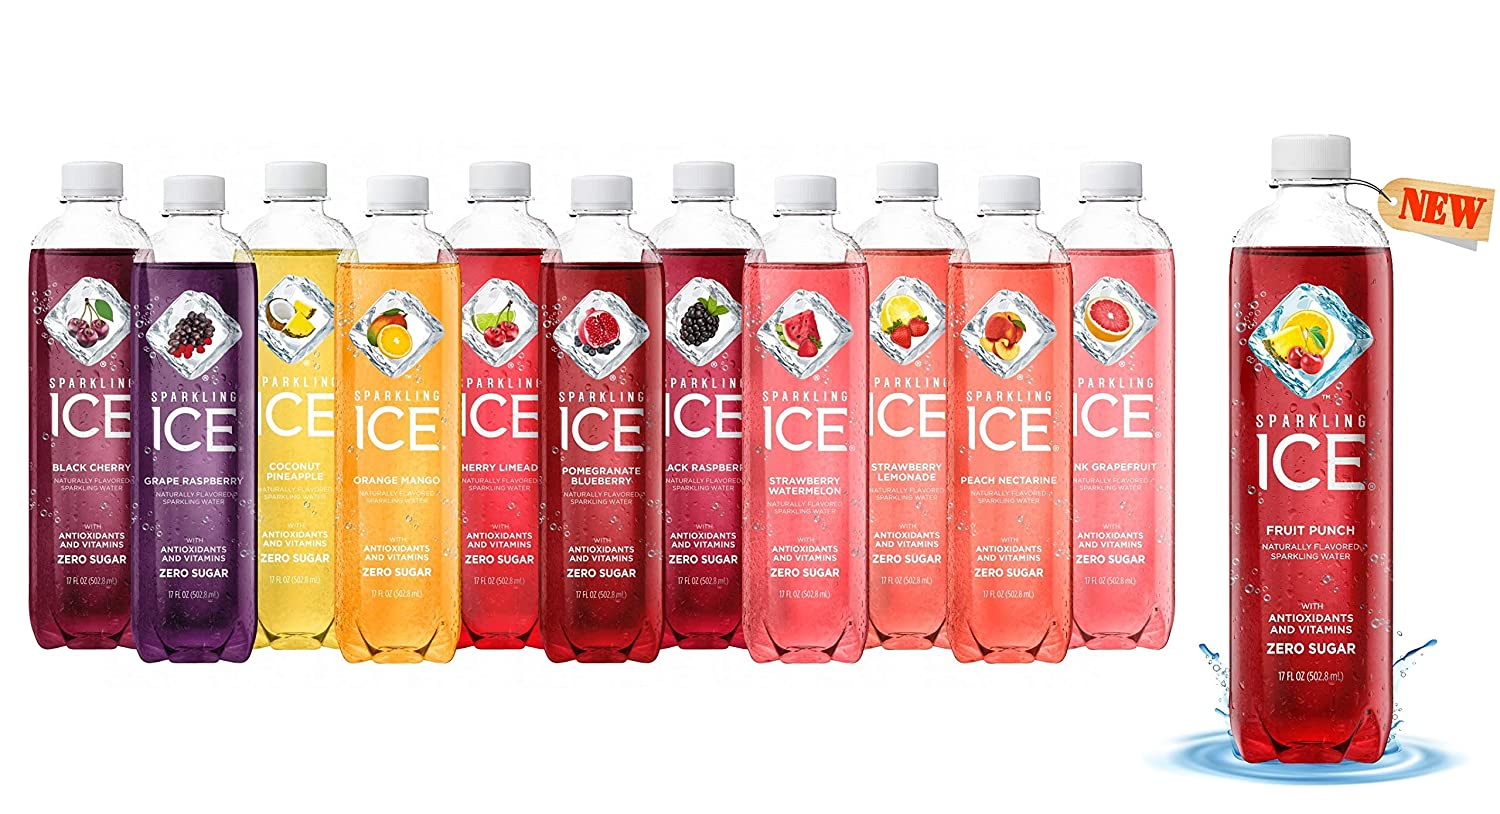 Sparkling ICE Sparkling Water | 12 Flavor Variety Pack (Sampler) - 17 Fl Oz Bottles, Naturally Flavored Sparkling Water with Antioxidants & Vitamins | Pack Of 12